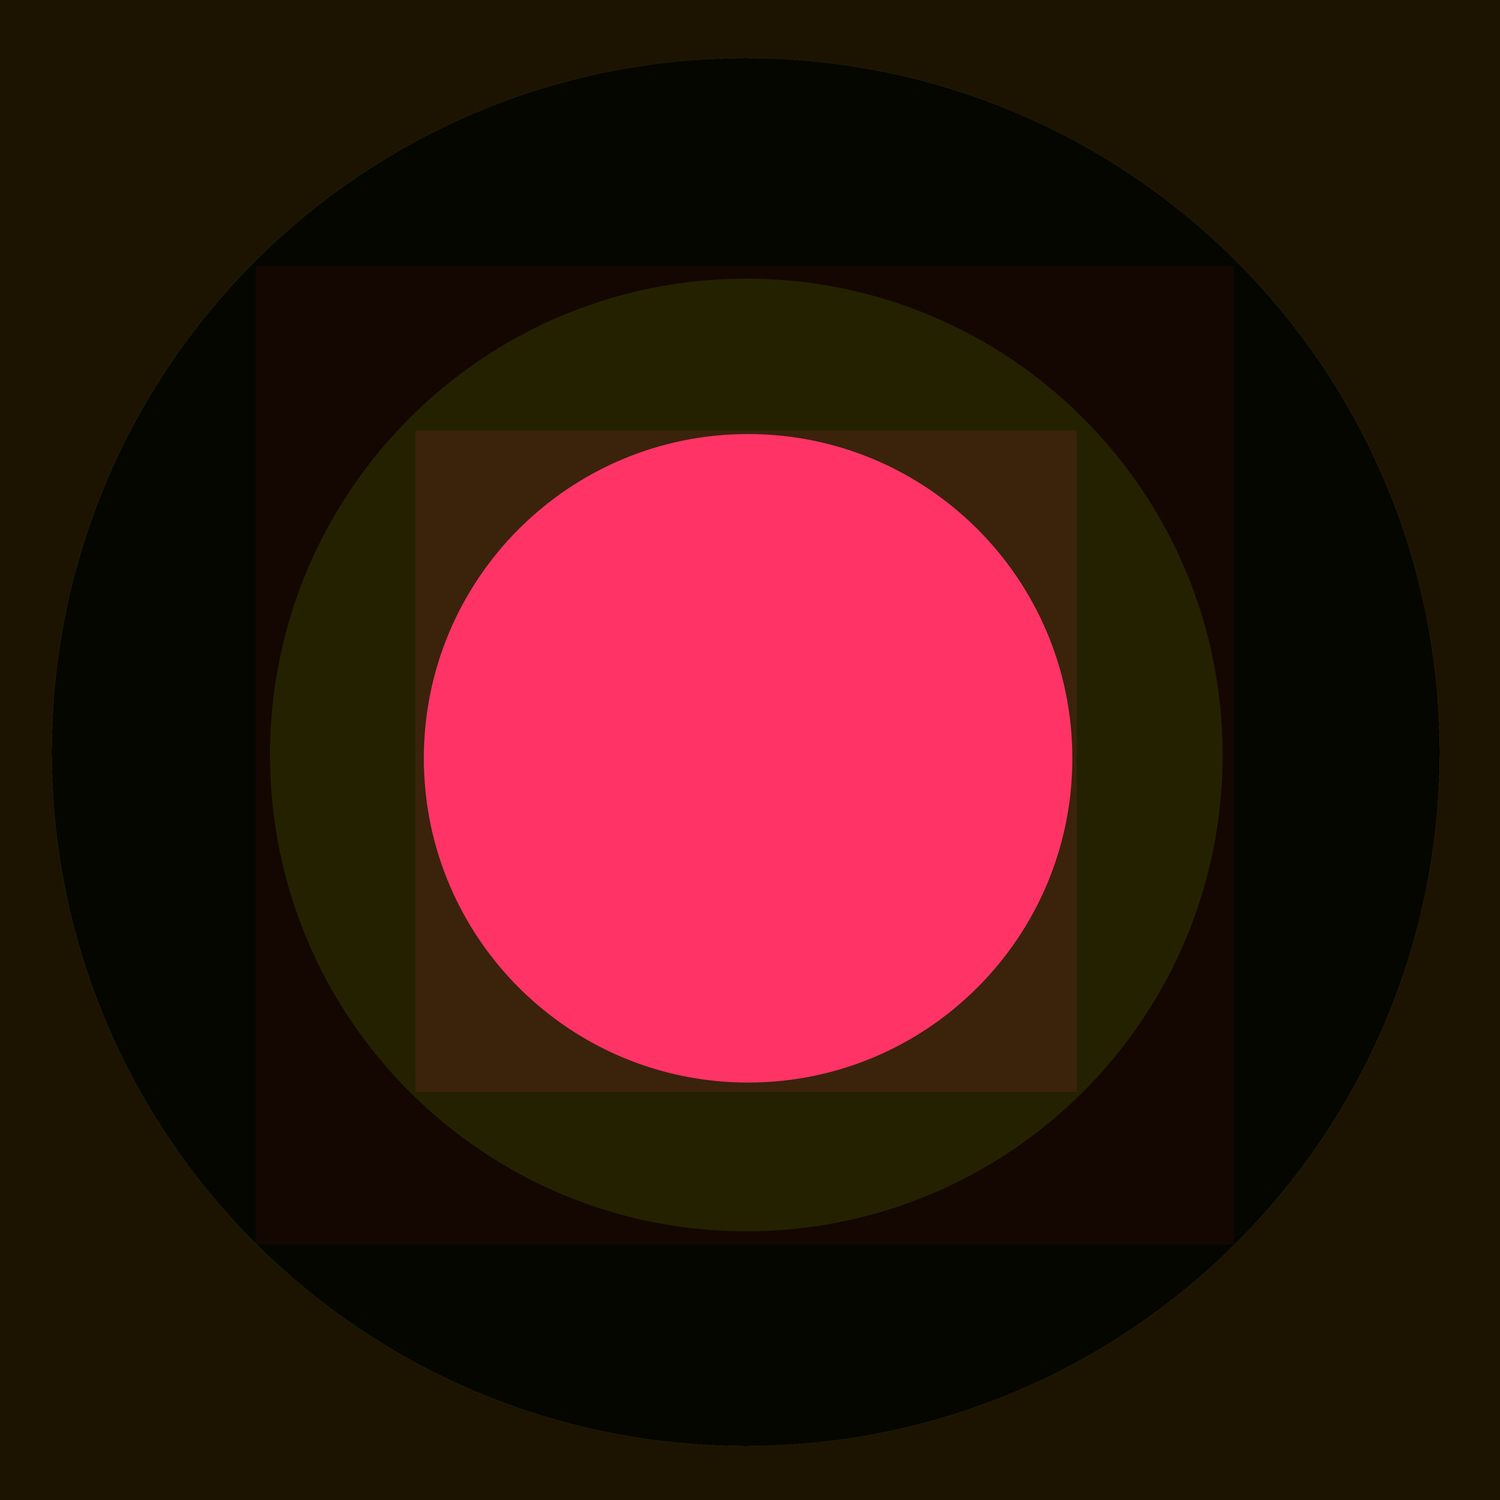 I Dreamed of James Turrell Living Happily in a Hole 24